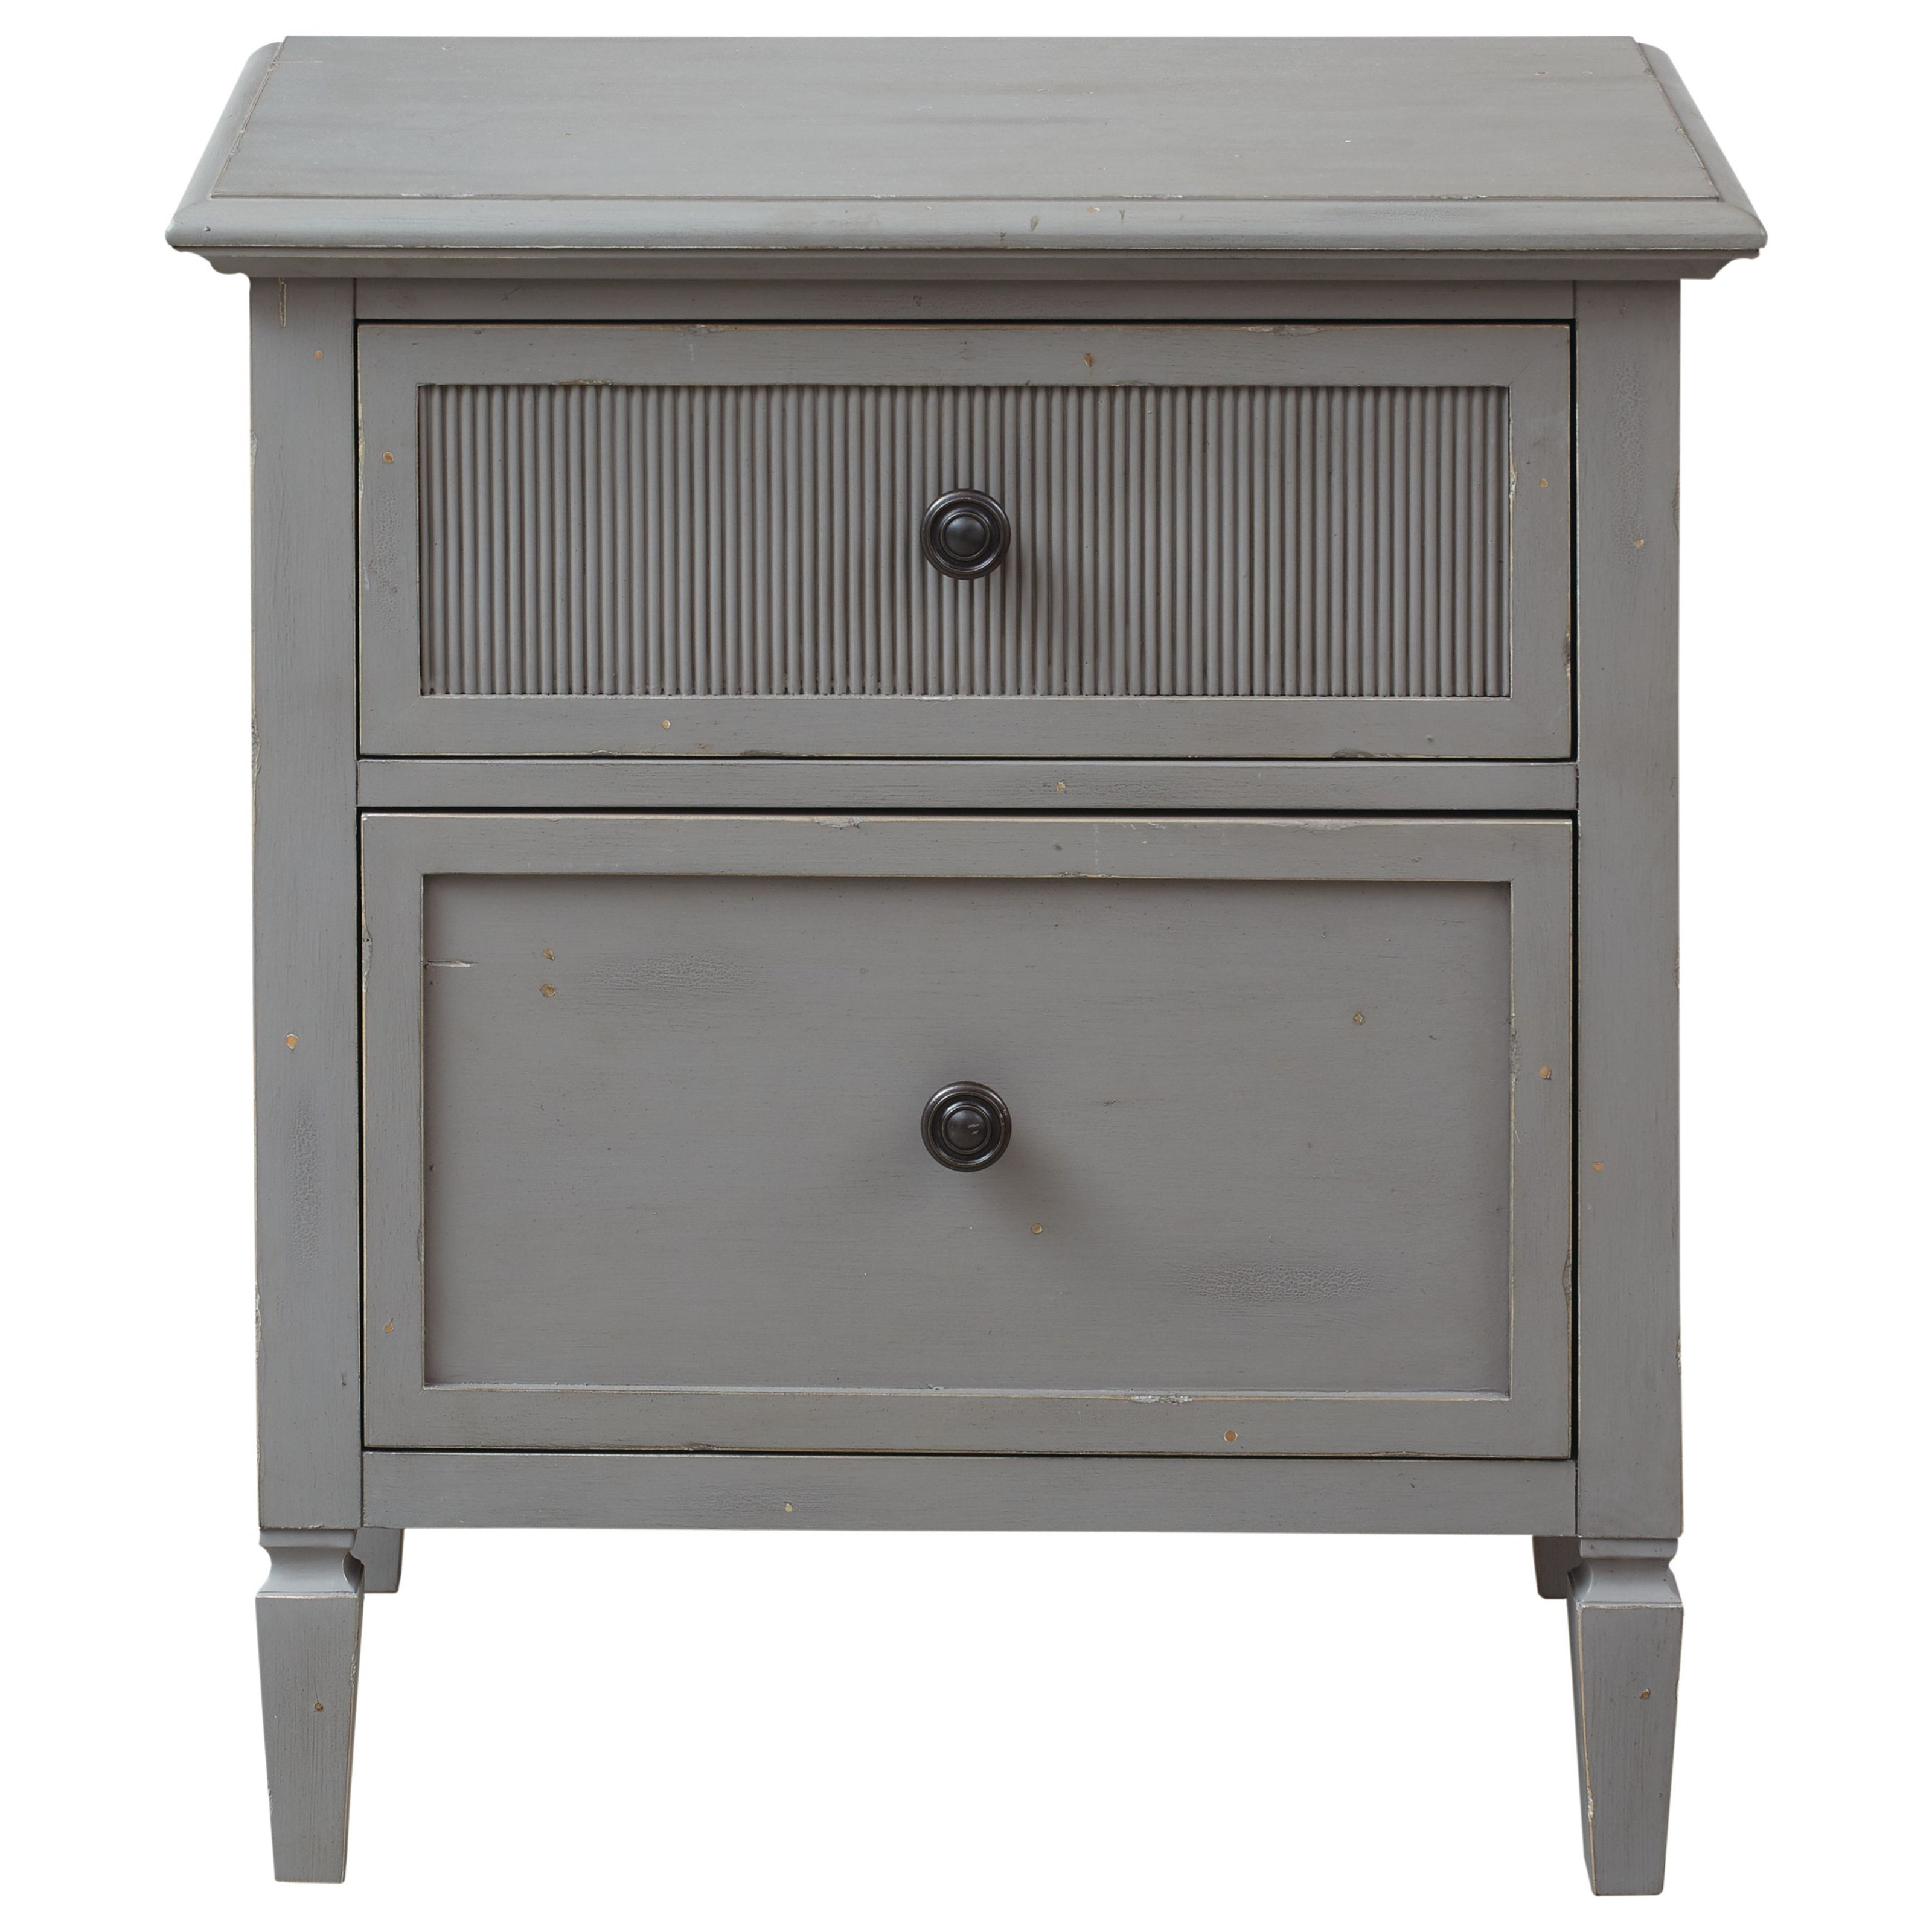 Shoreline Nightstand by Bassett at Williams & Kay